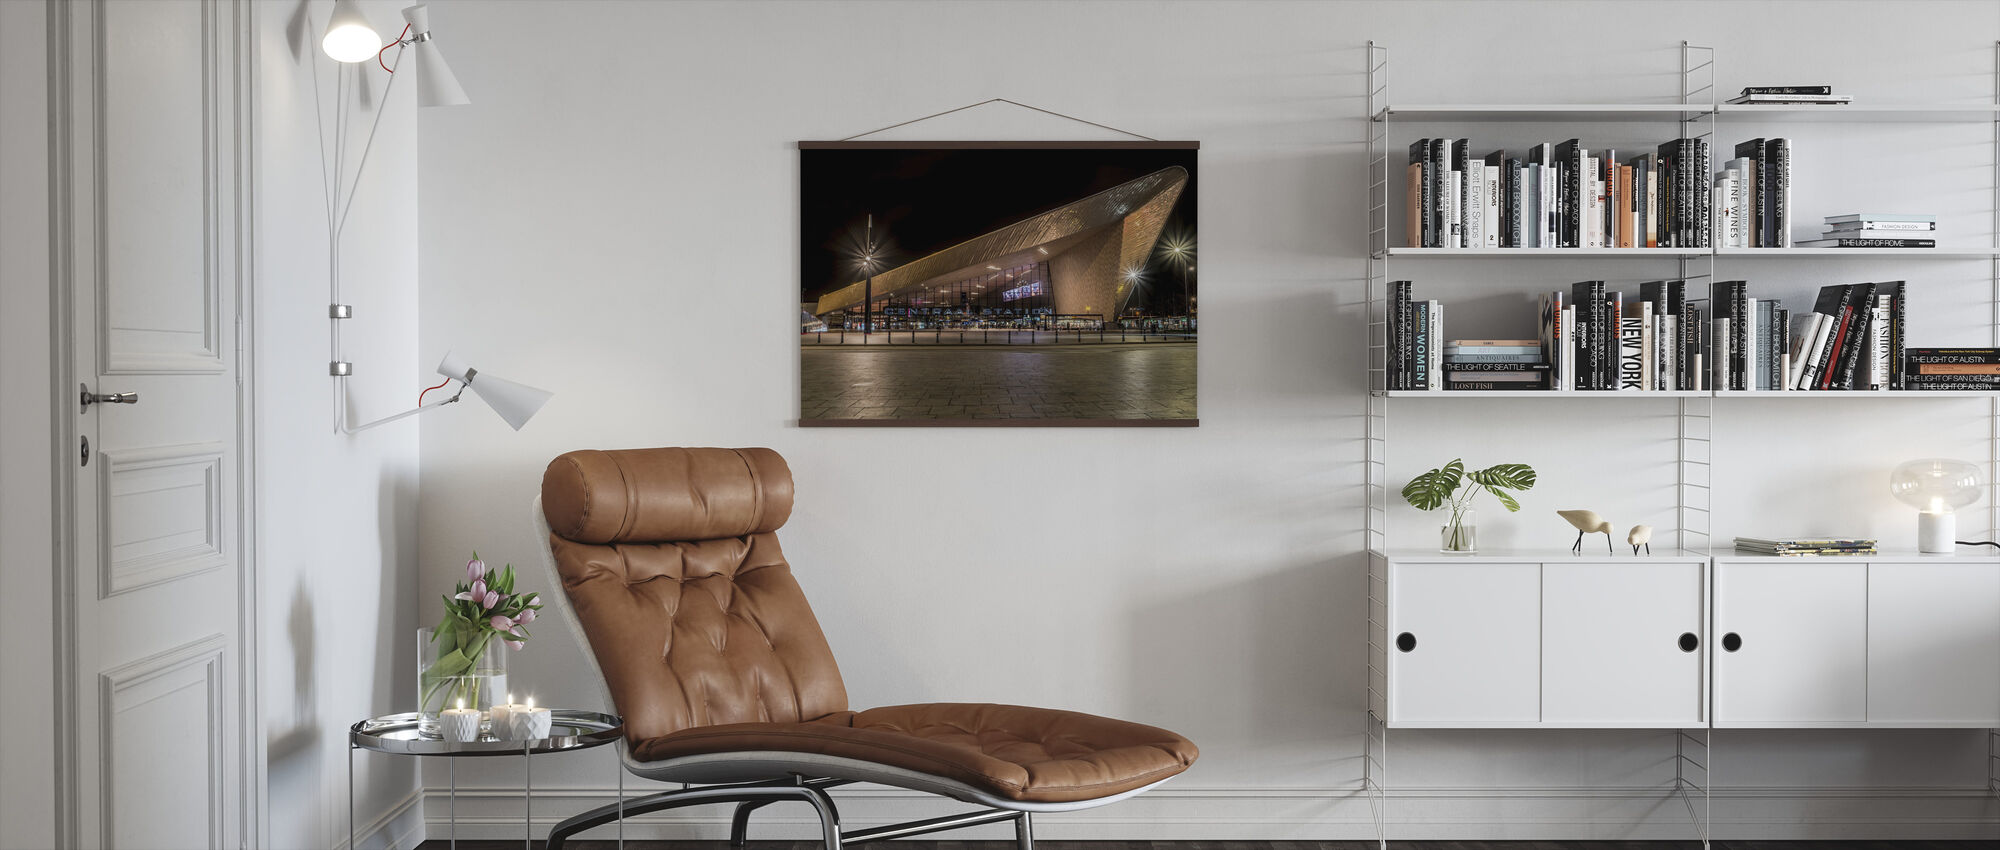 Rotterdam Centraal Station - Poster - Woonkamer